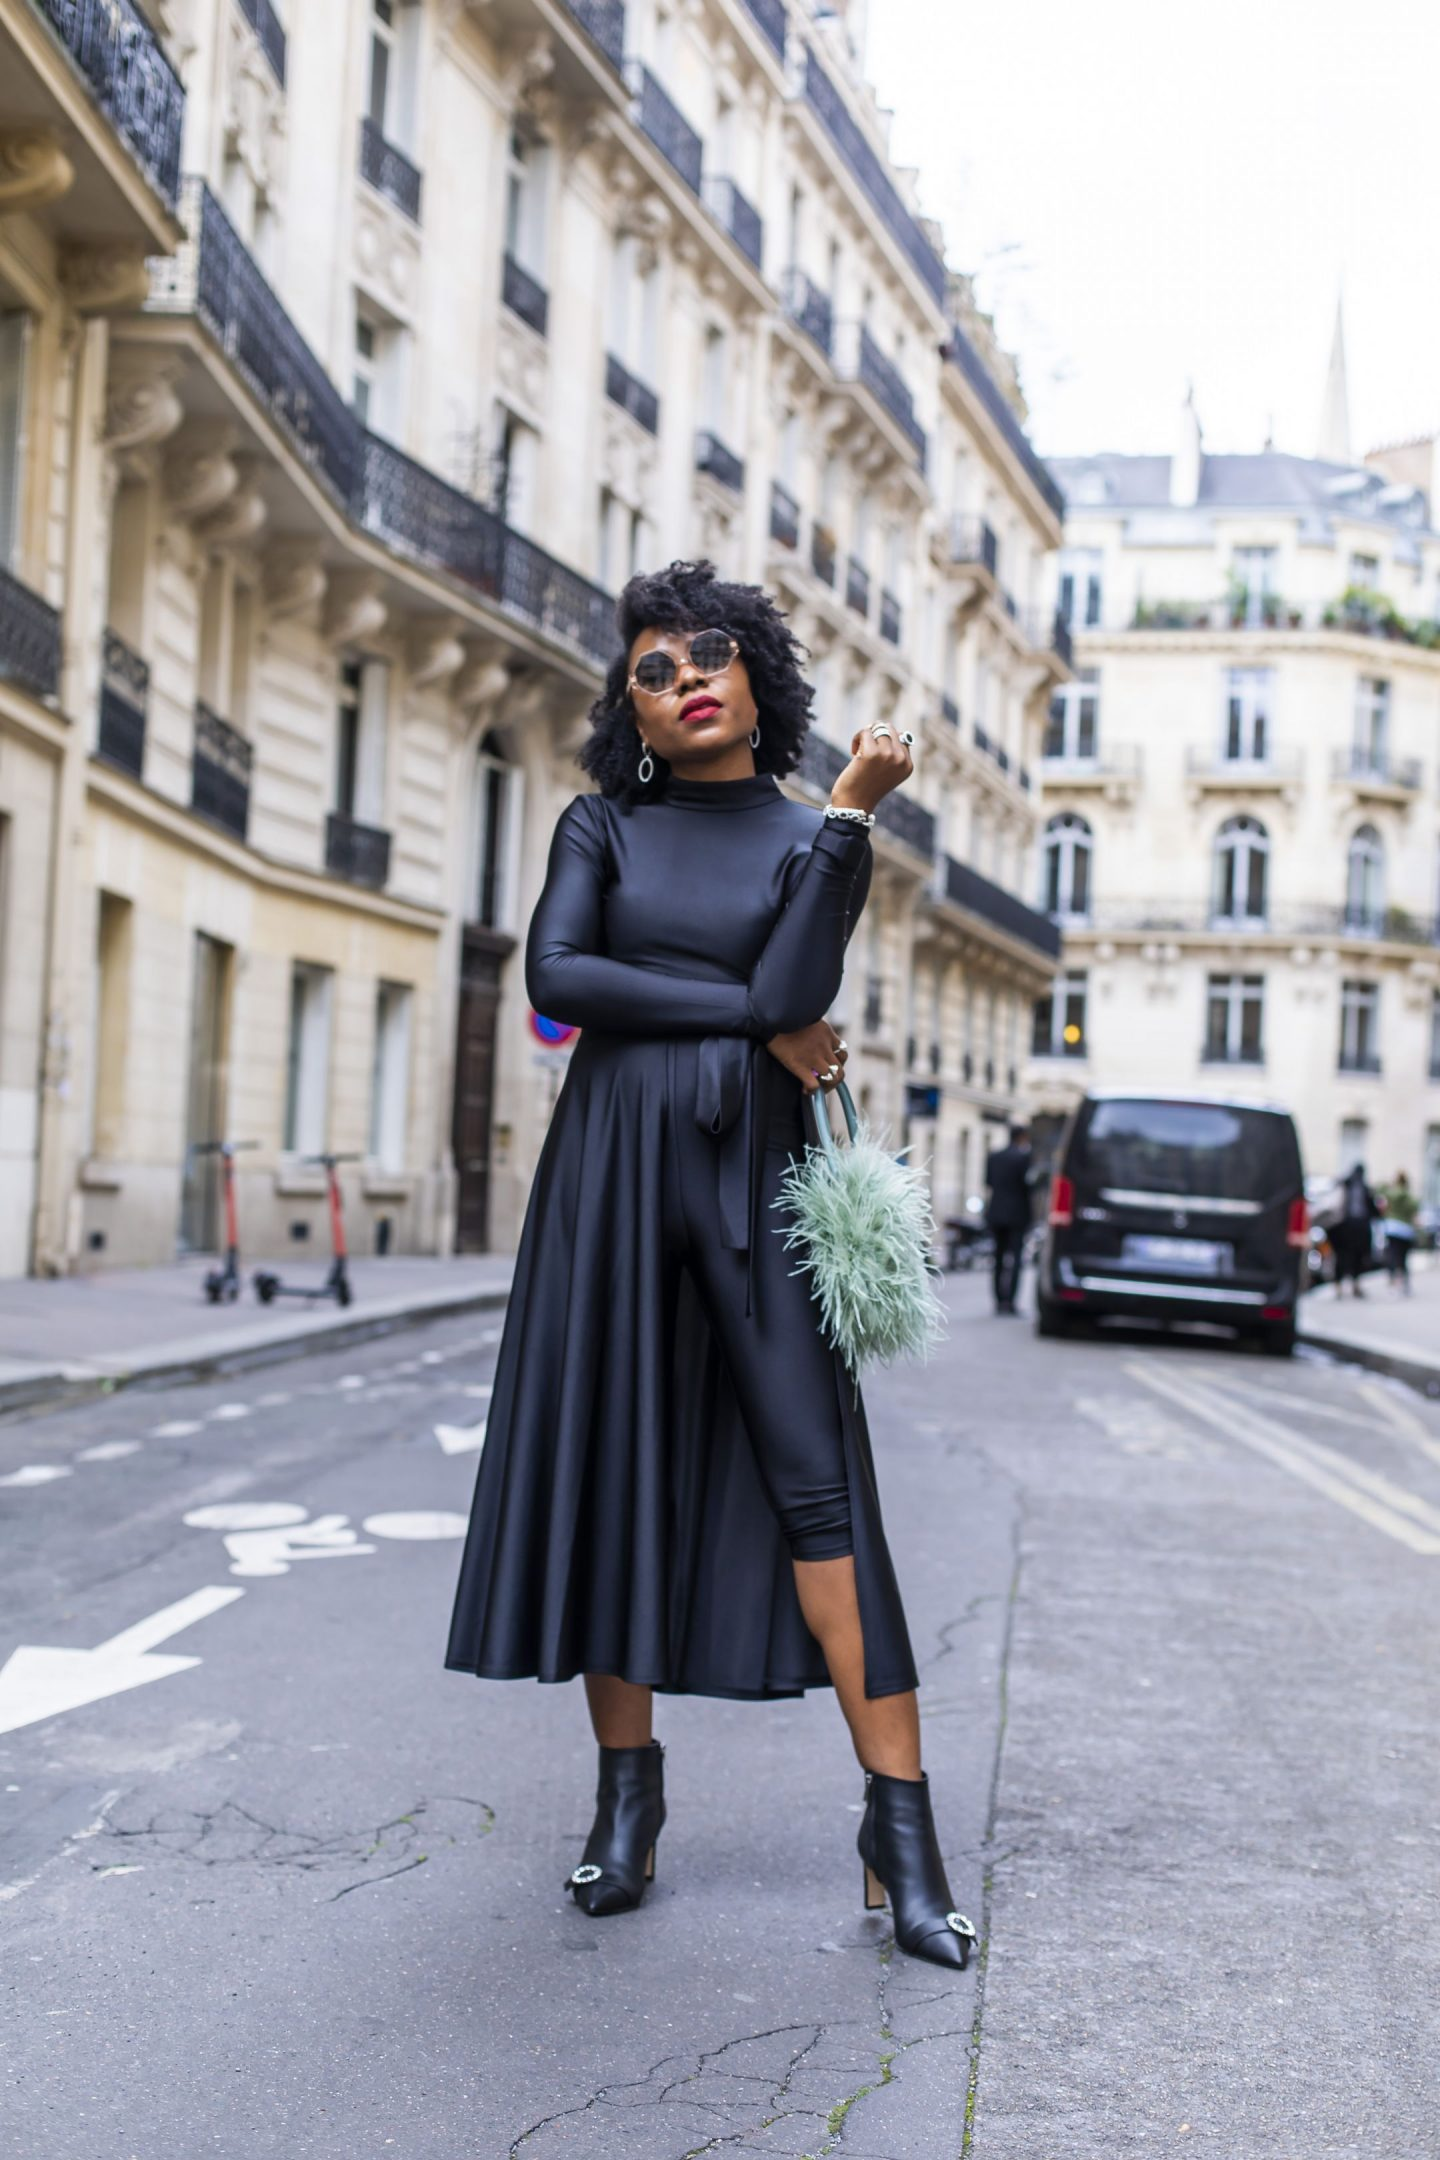 Fashion recap: What I wore for Paris Fashion Week (PART I)